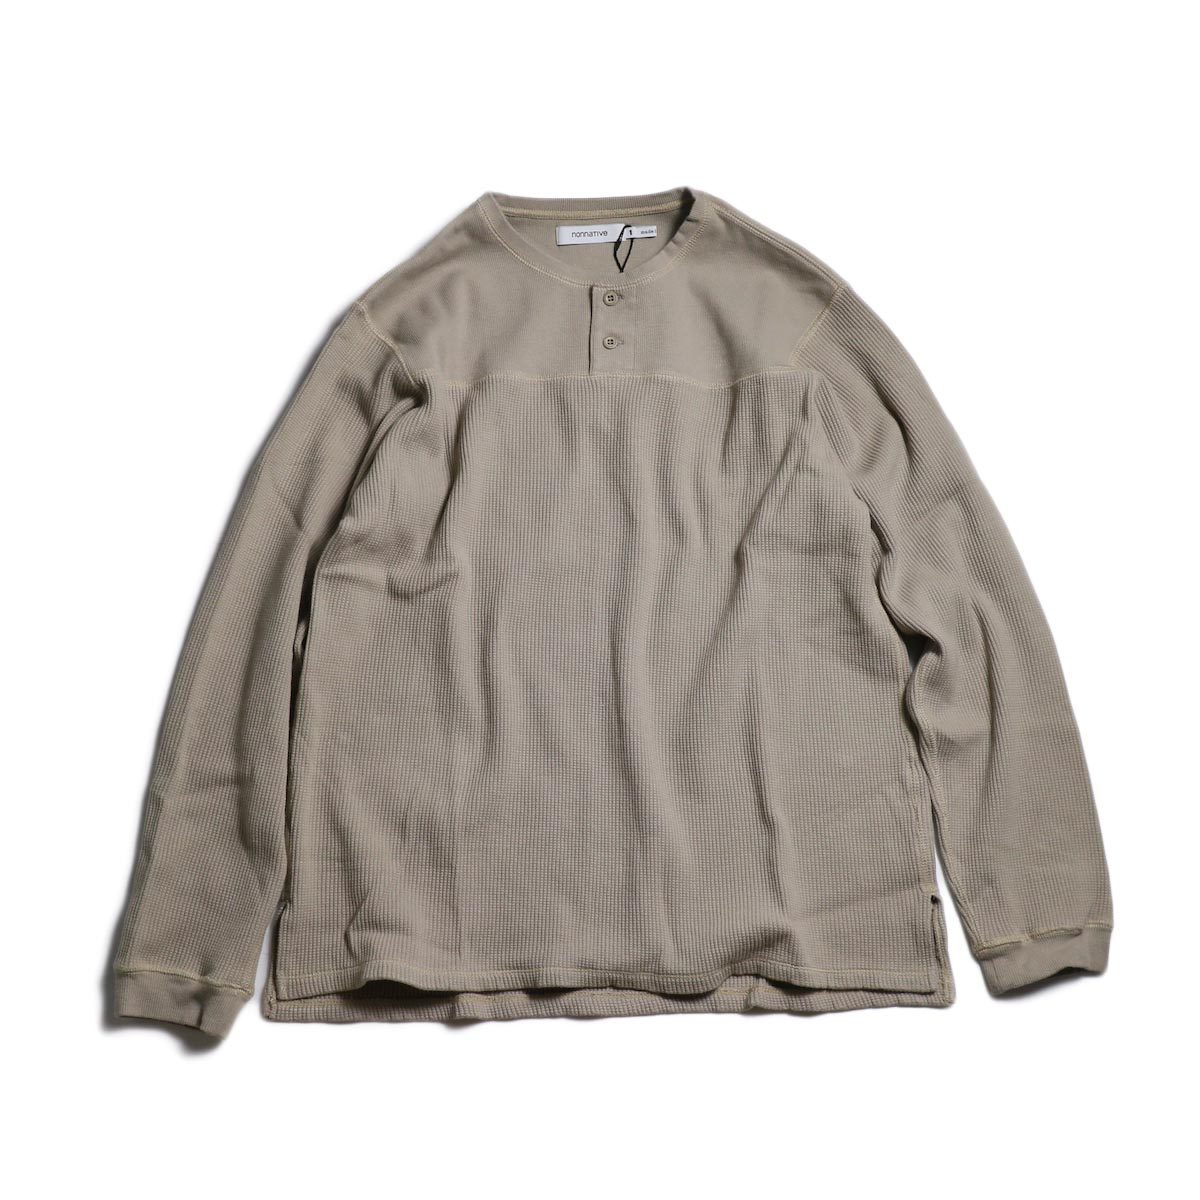 nonnative / HUNTER HENLEY NECK L/S TEE C/P THERMAL -Beige